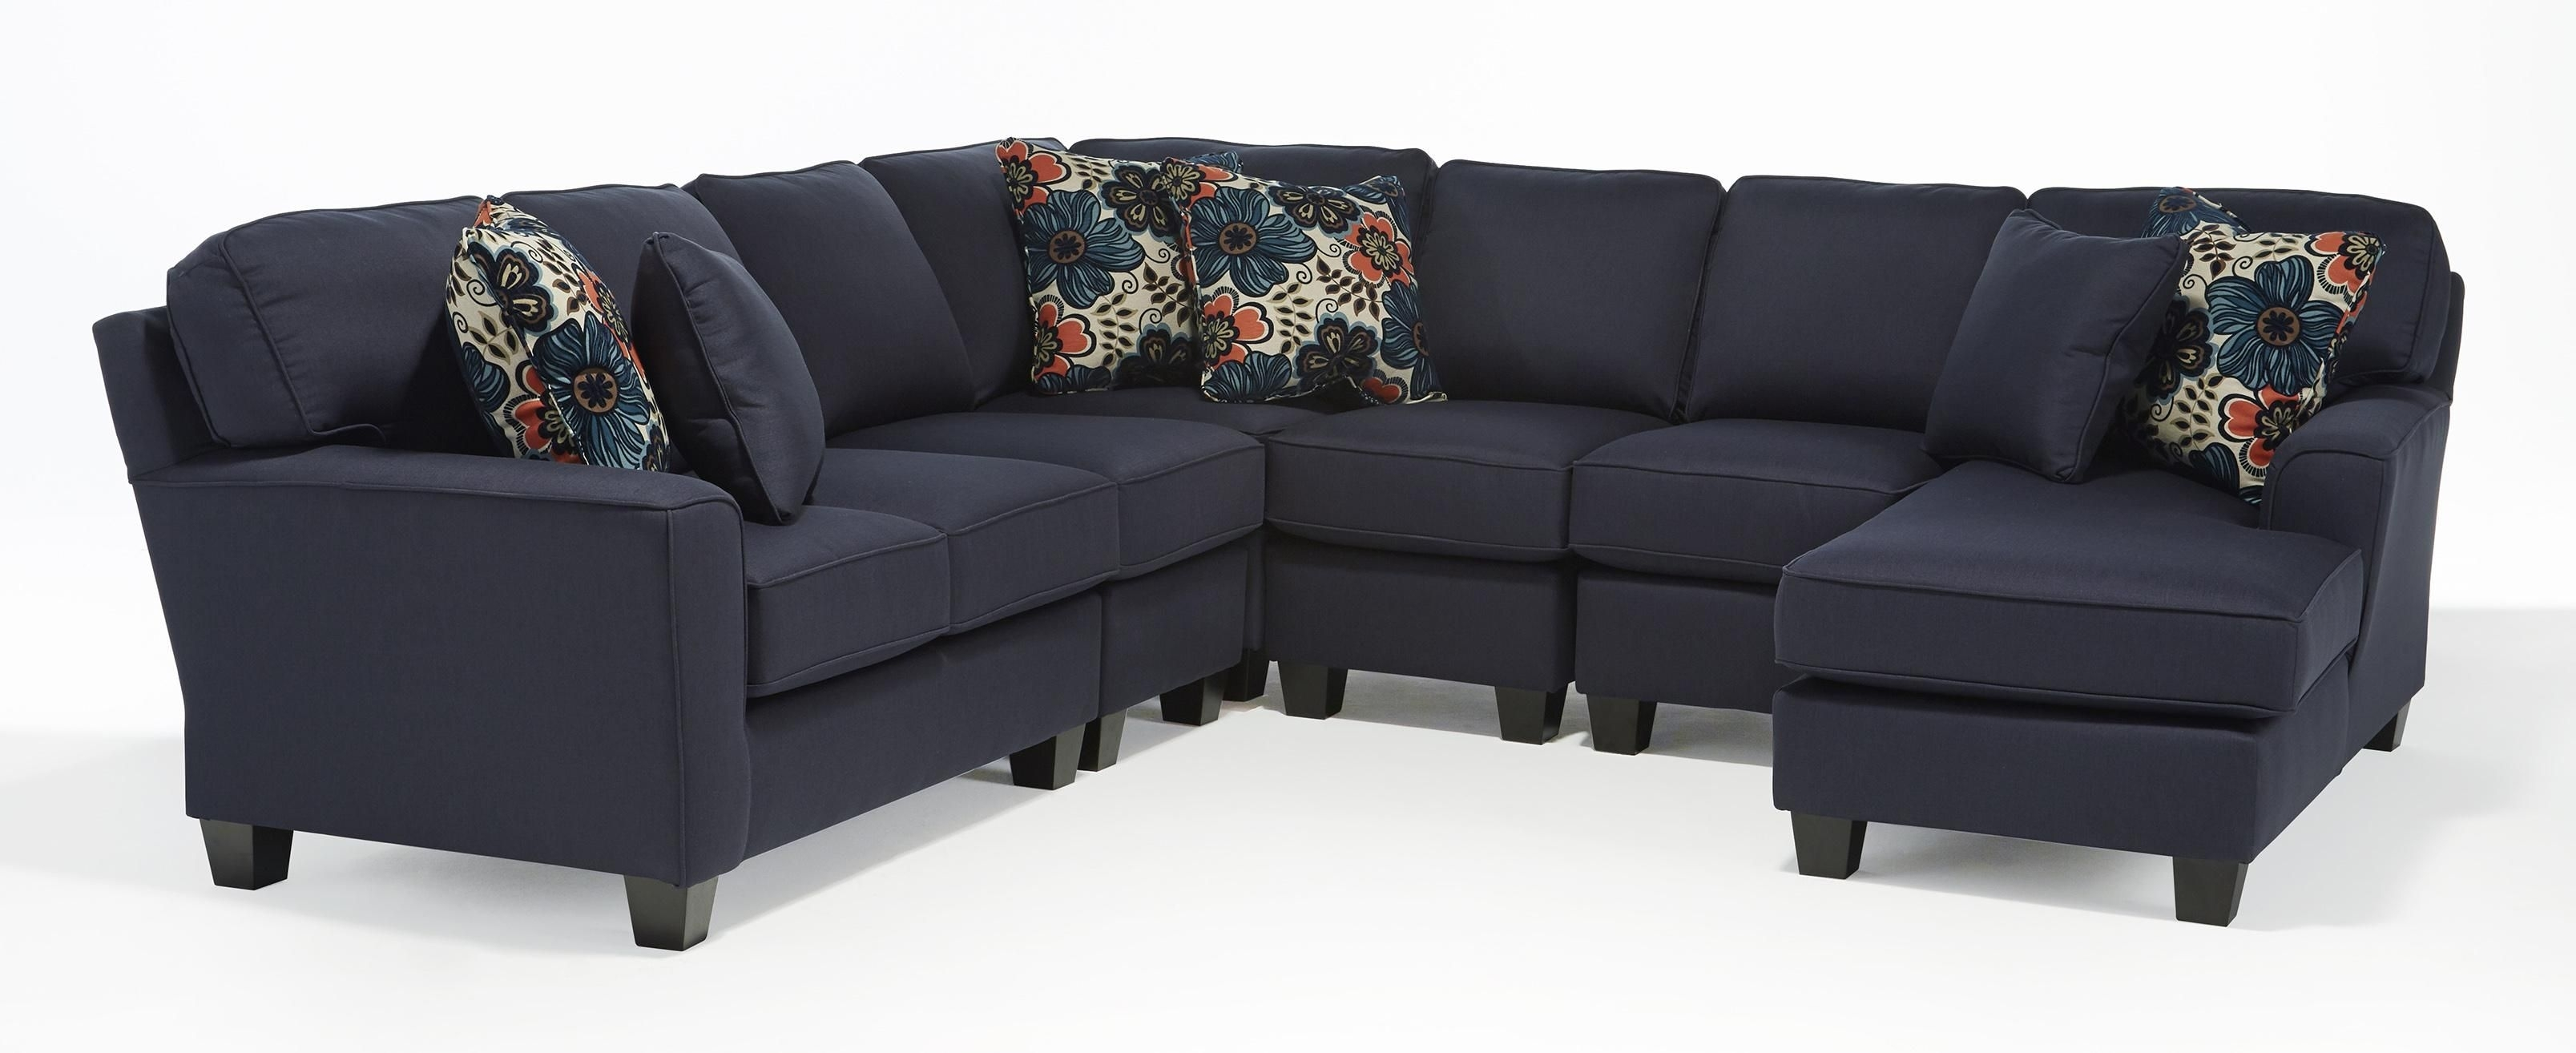 Best Home Furnishings Annabel Five Piece Customizable Sectional Sofa Intended For Durham Region Sectional Sofas (View 6 of 10)